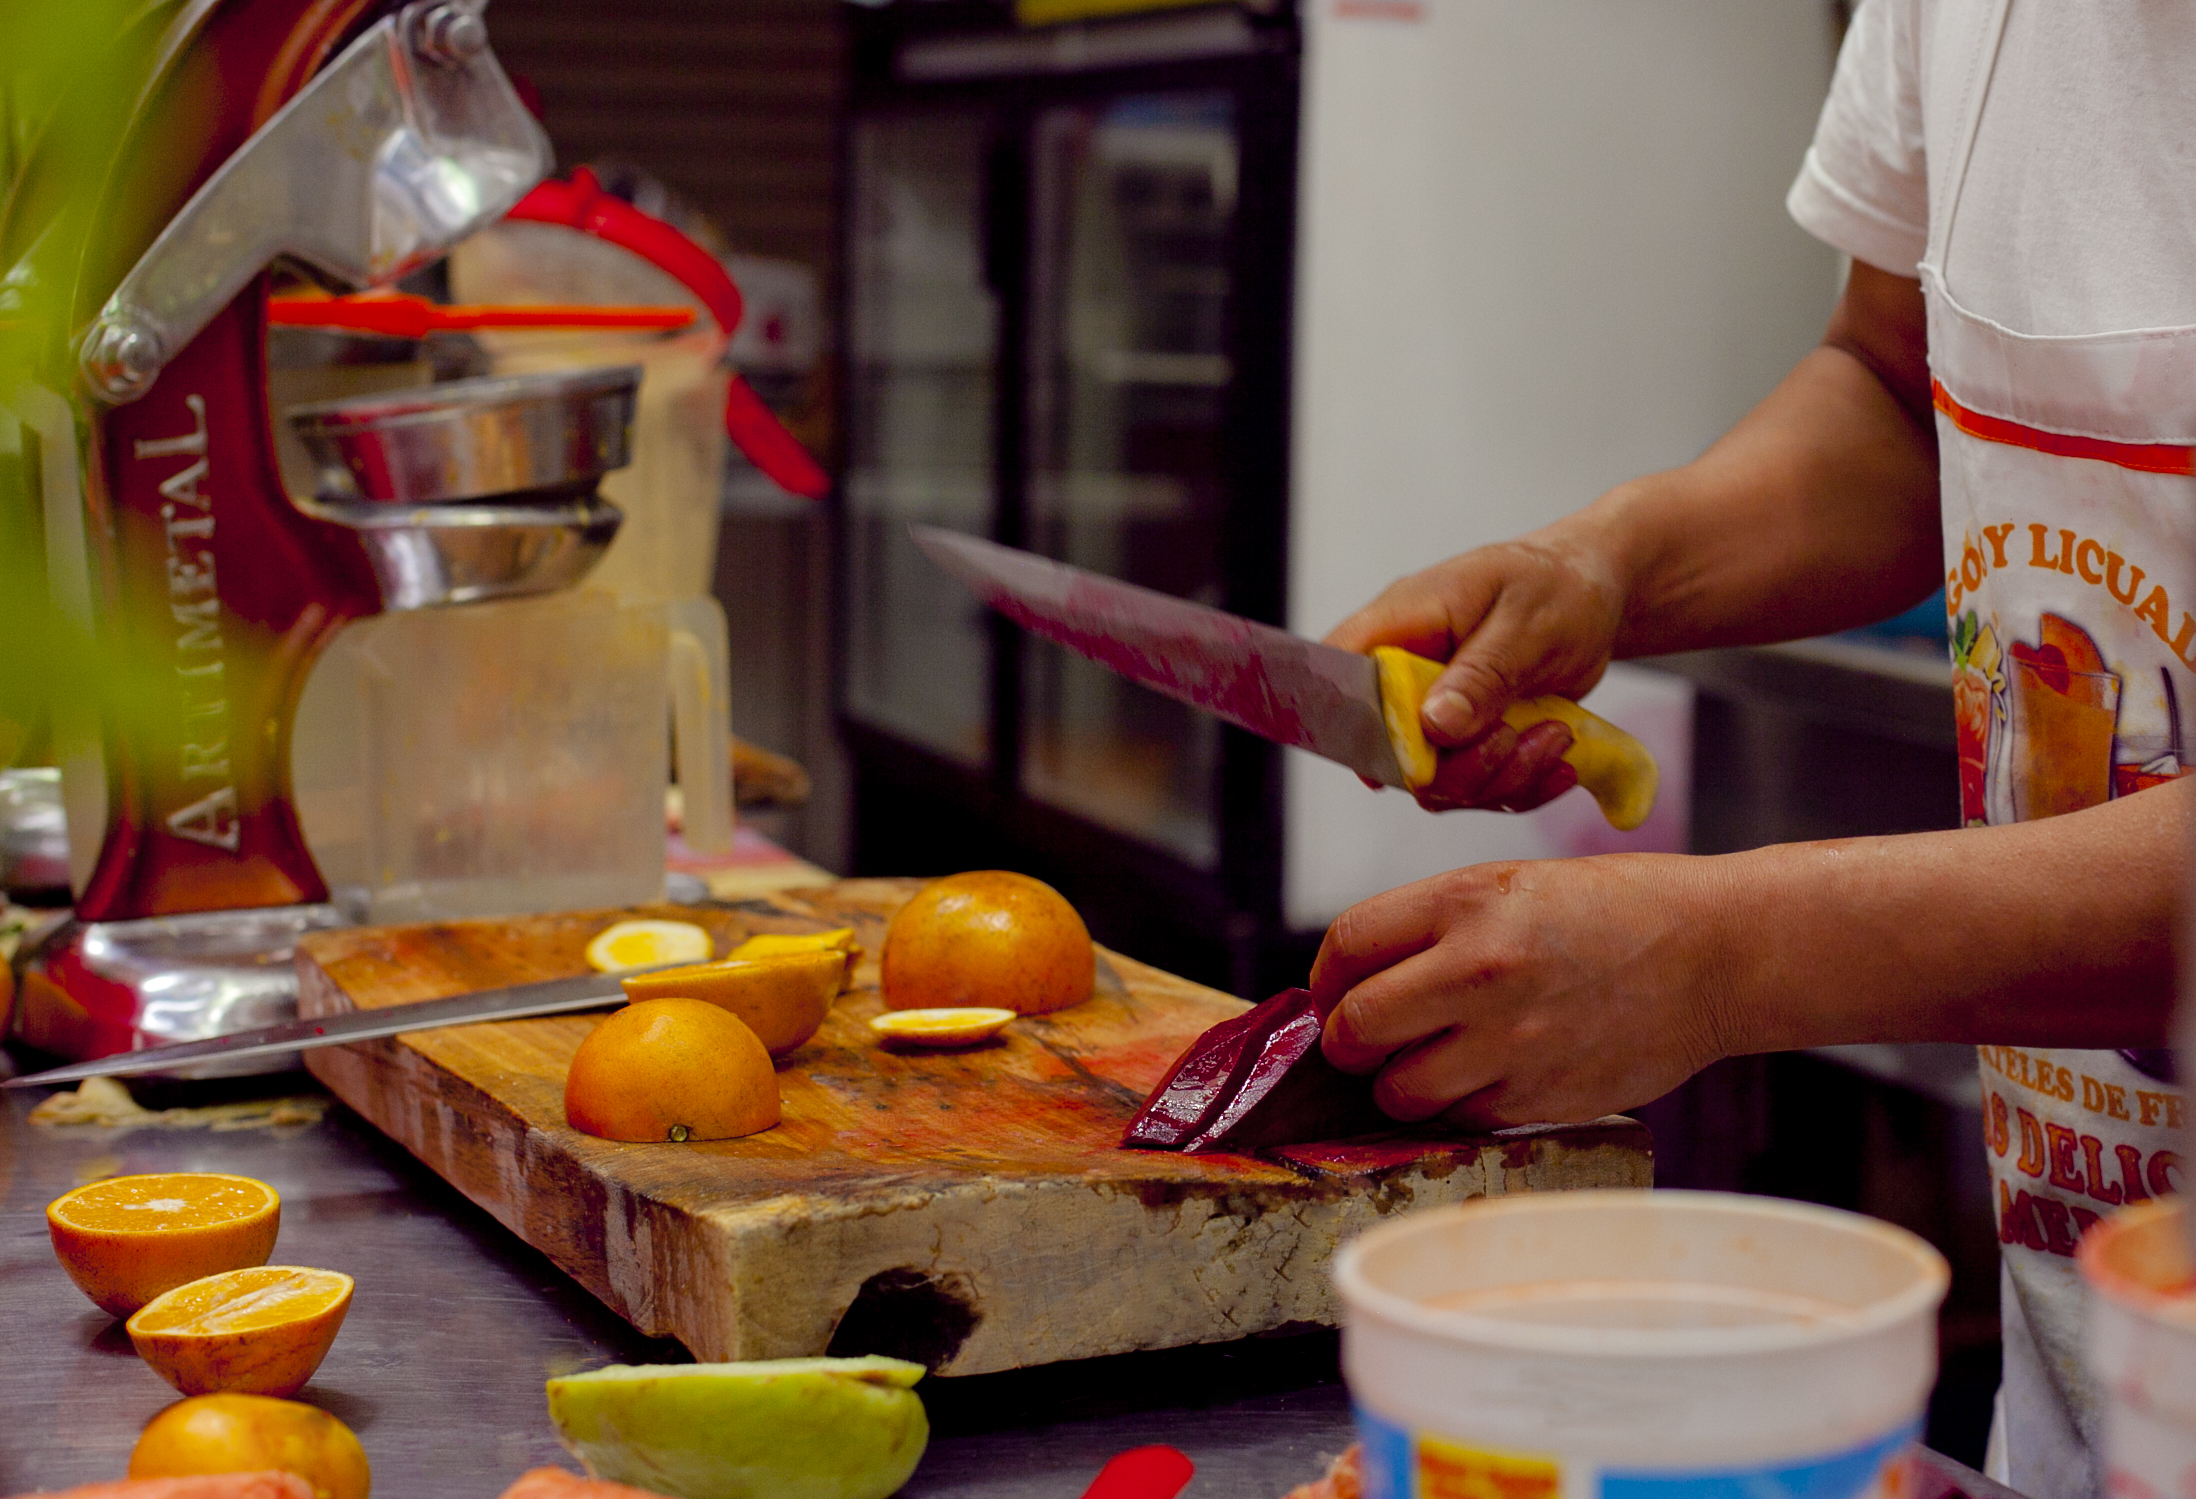 Chopping fruit at a market in Mexico City.